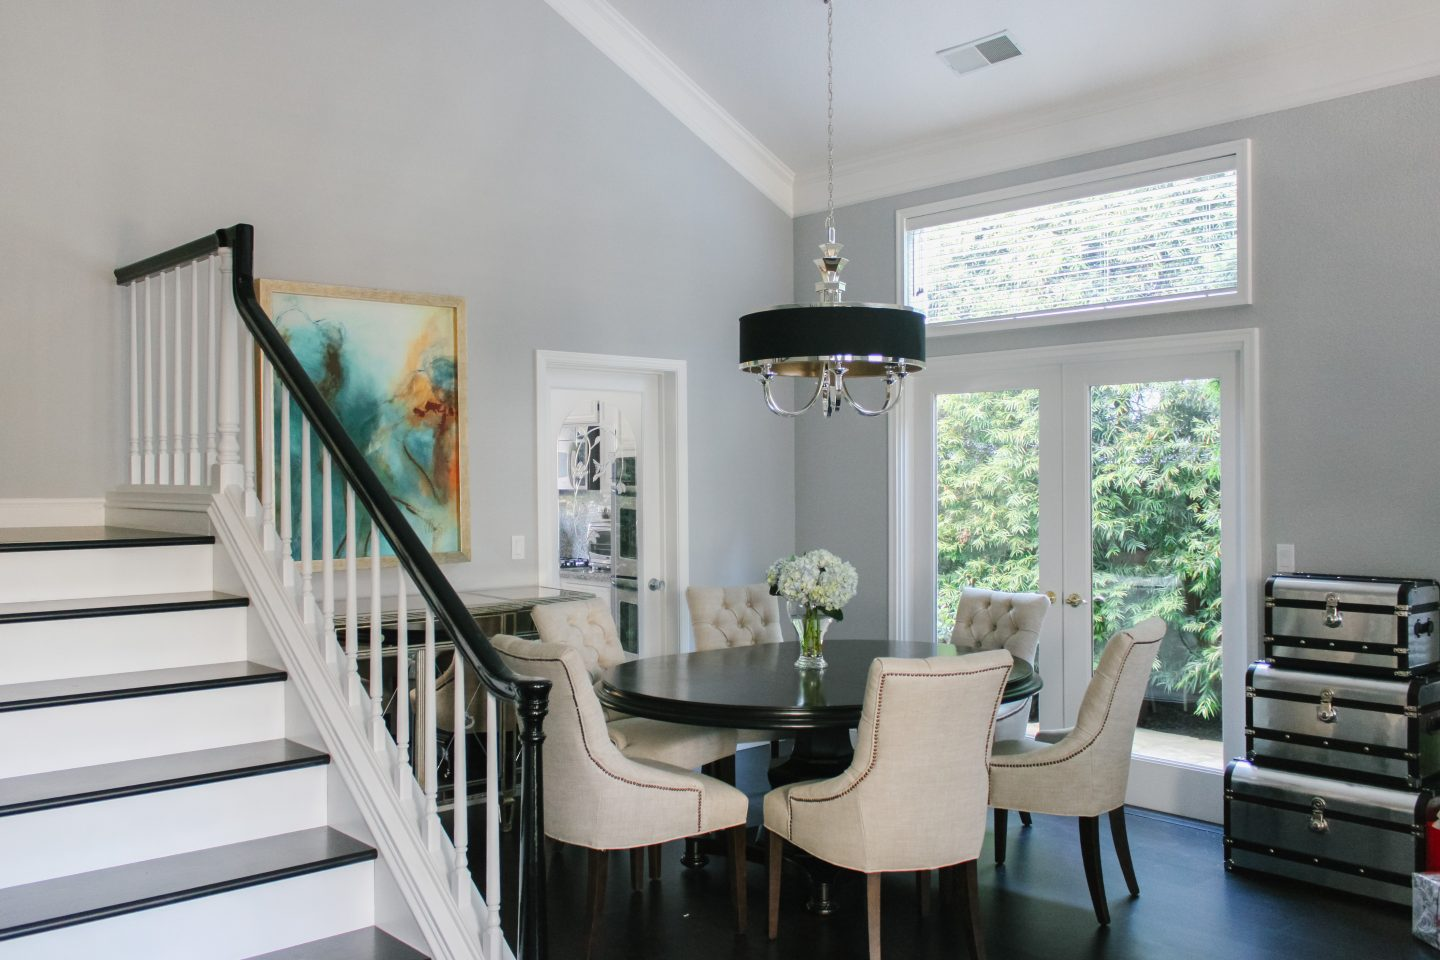 Dining room makeover before and after featured by top US life and style blog, Lombard and Fifth